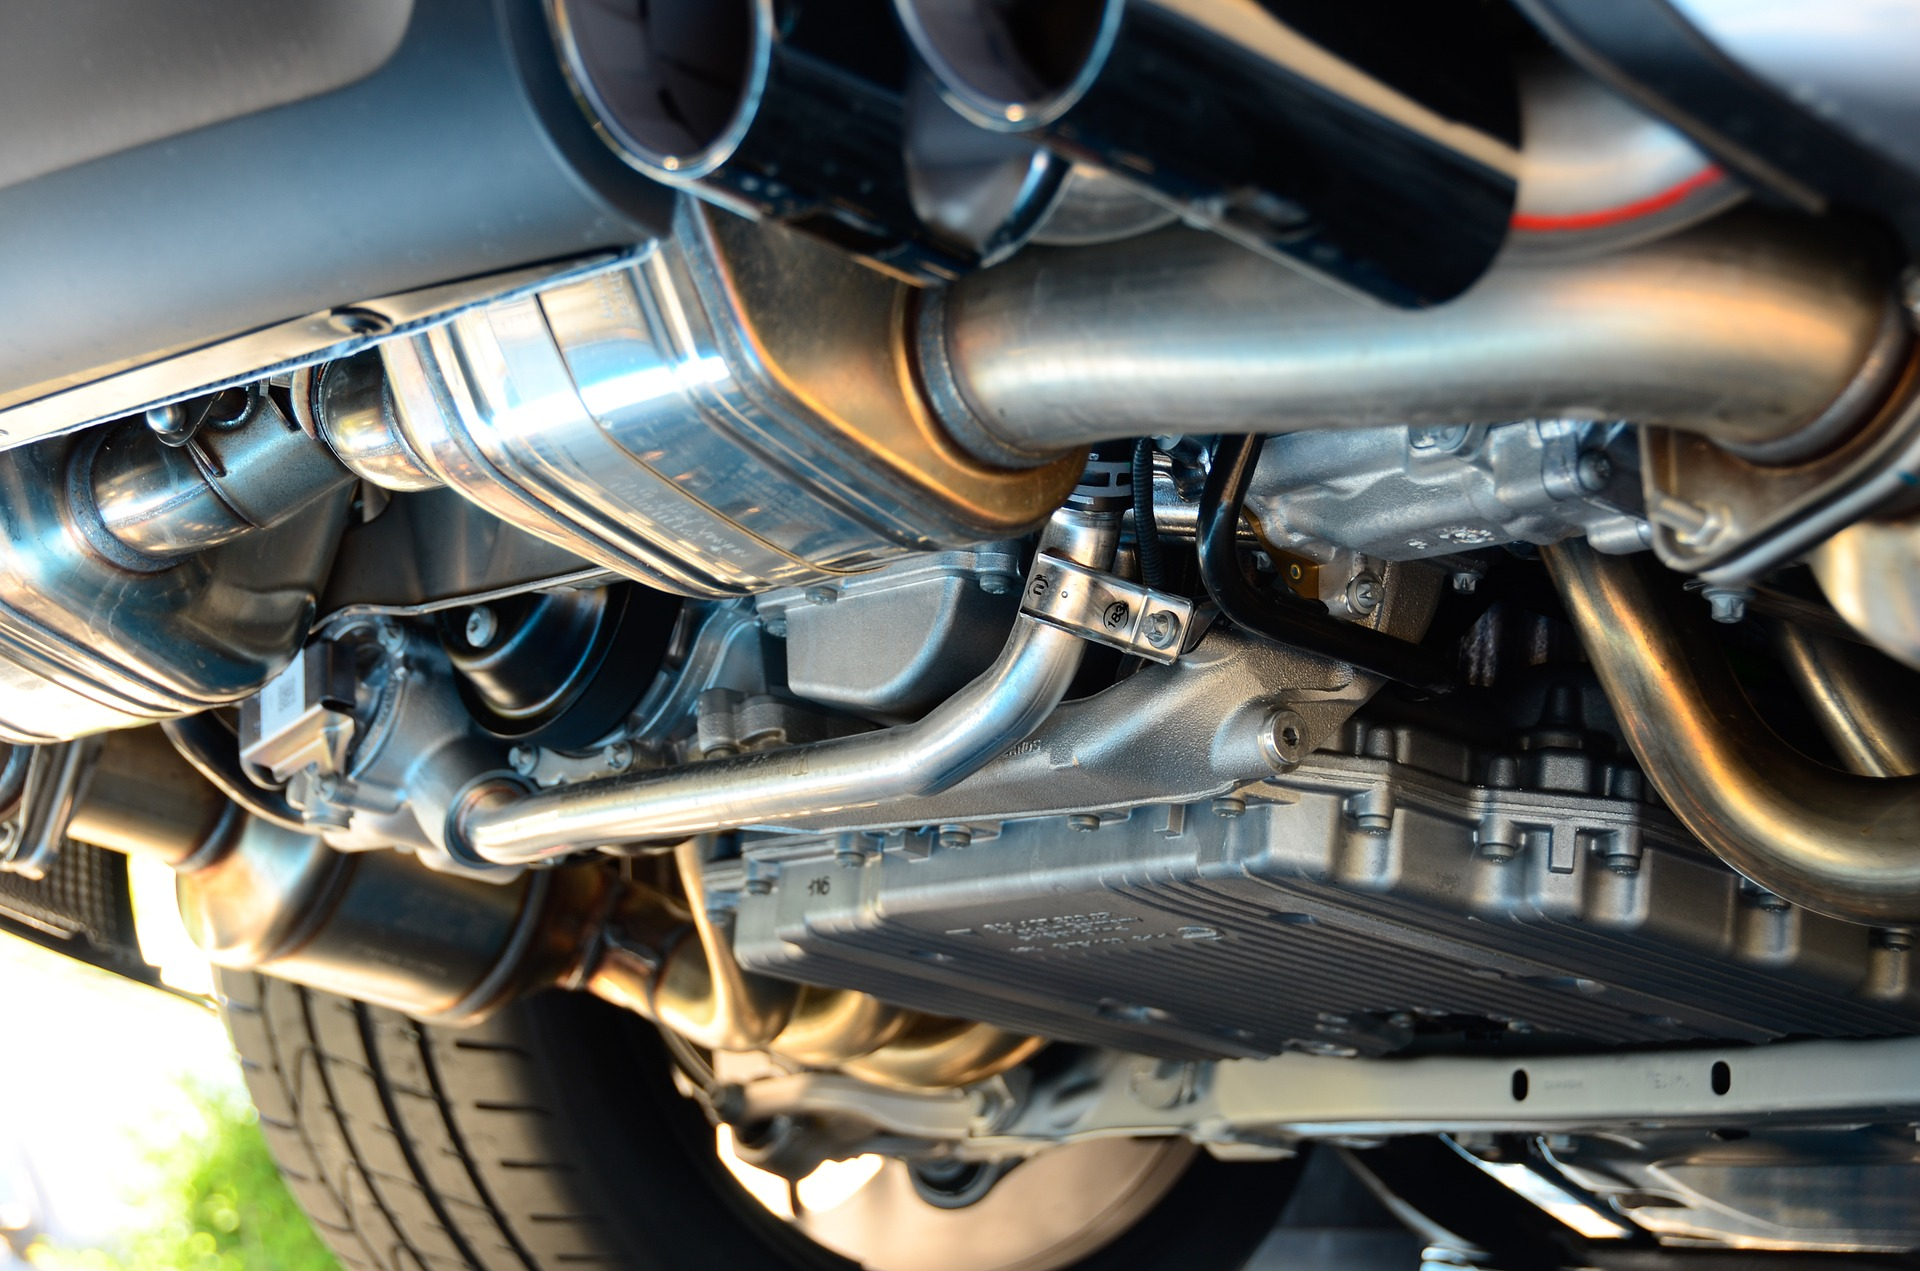 An image of the underside of a car, showing the exhaust.